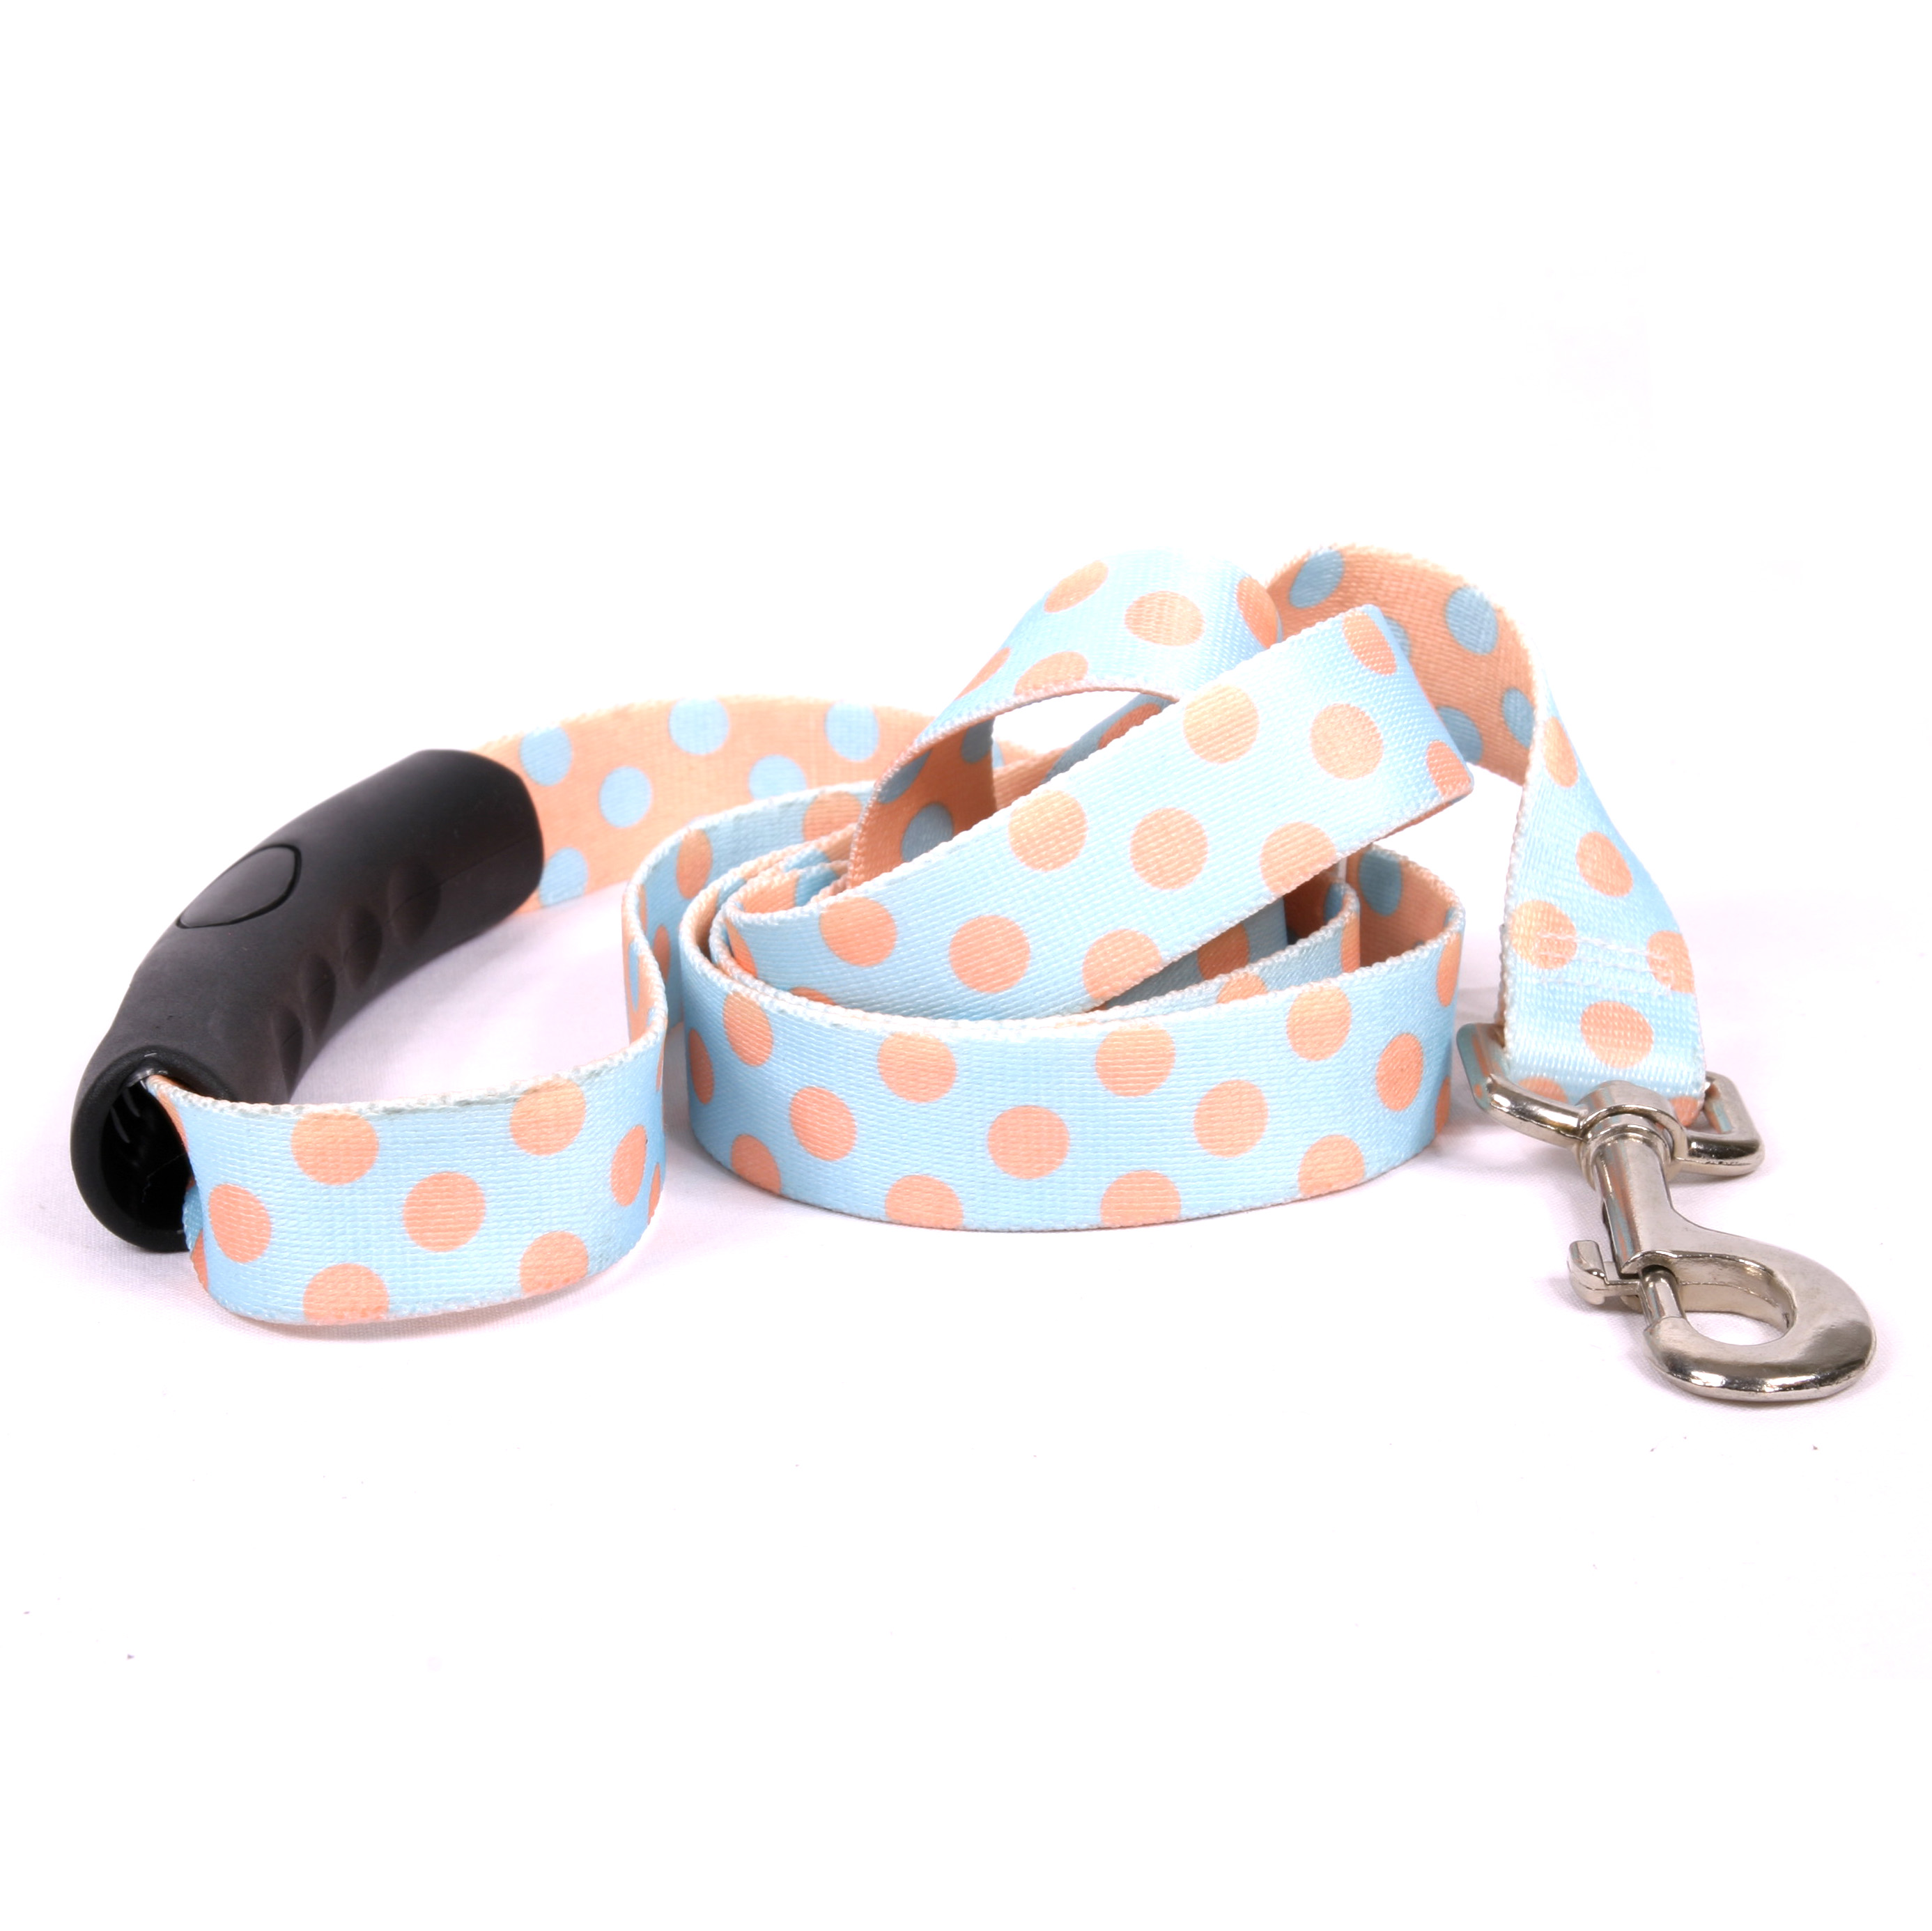 Blue and Melon Polka Dot EZ-Lead